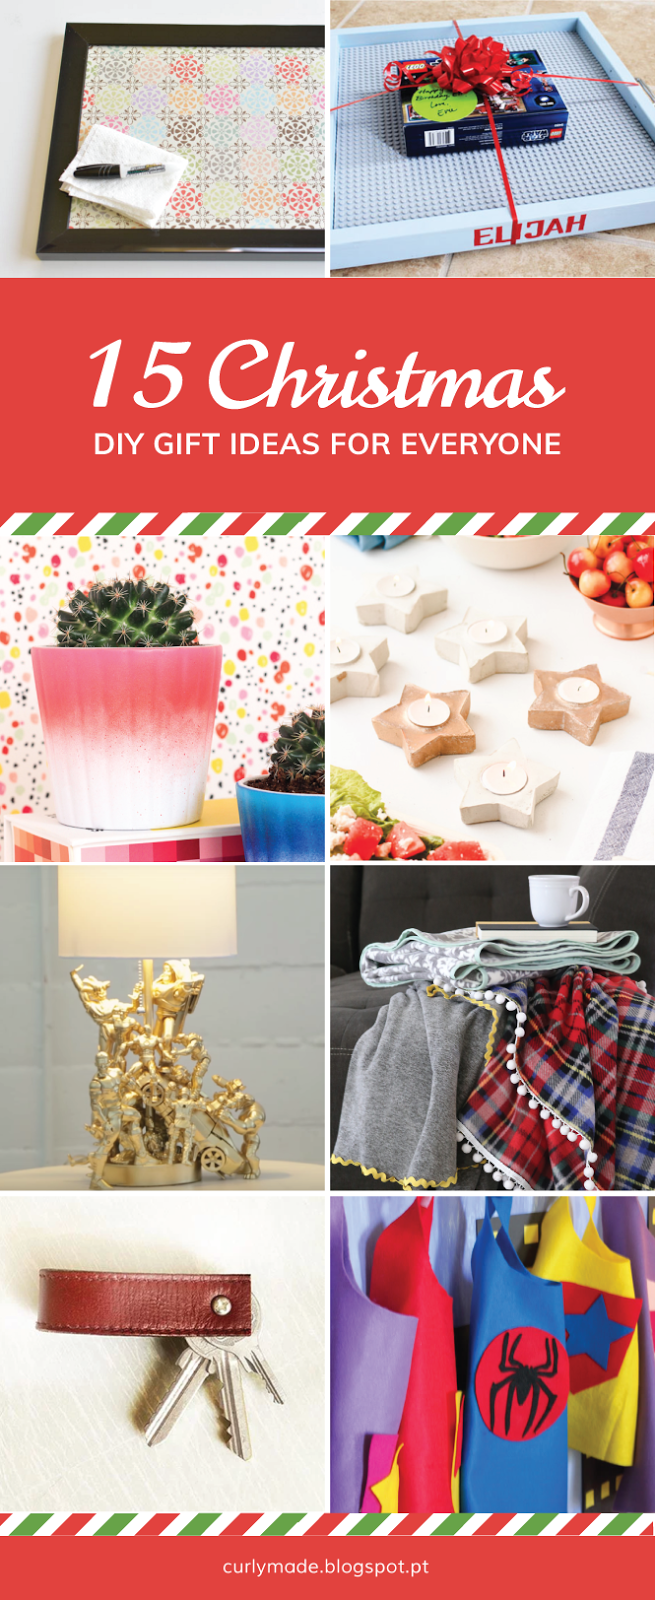 Curly Made | 15 DIY Christmas Gifts Everyone Will Love | DIY Roundup #crafts #Christmas #gifts